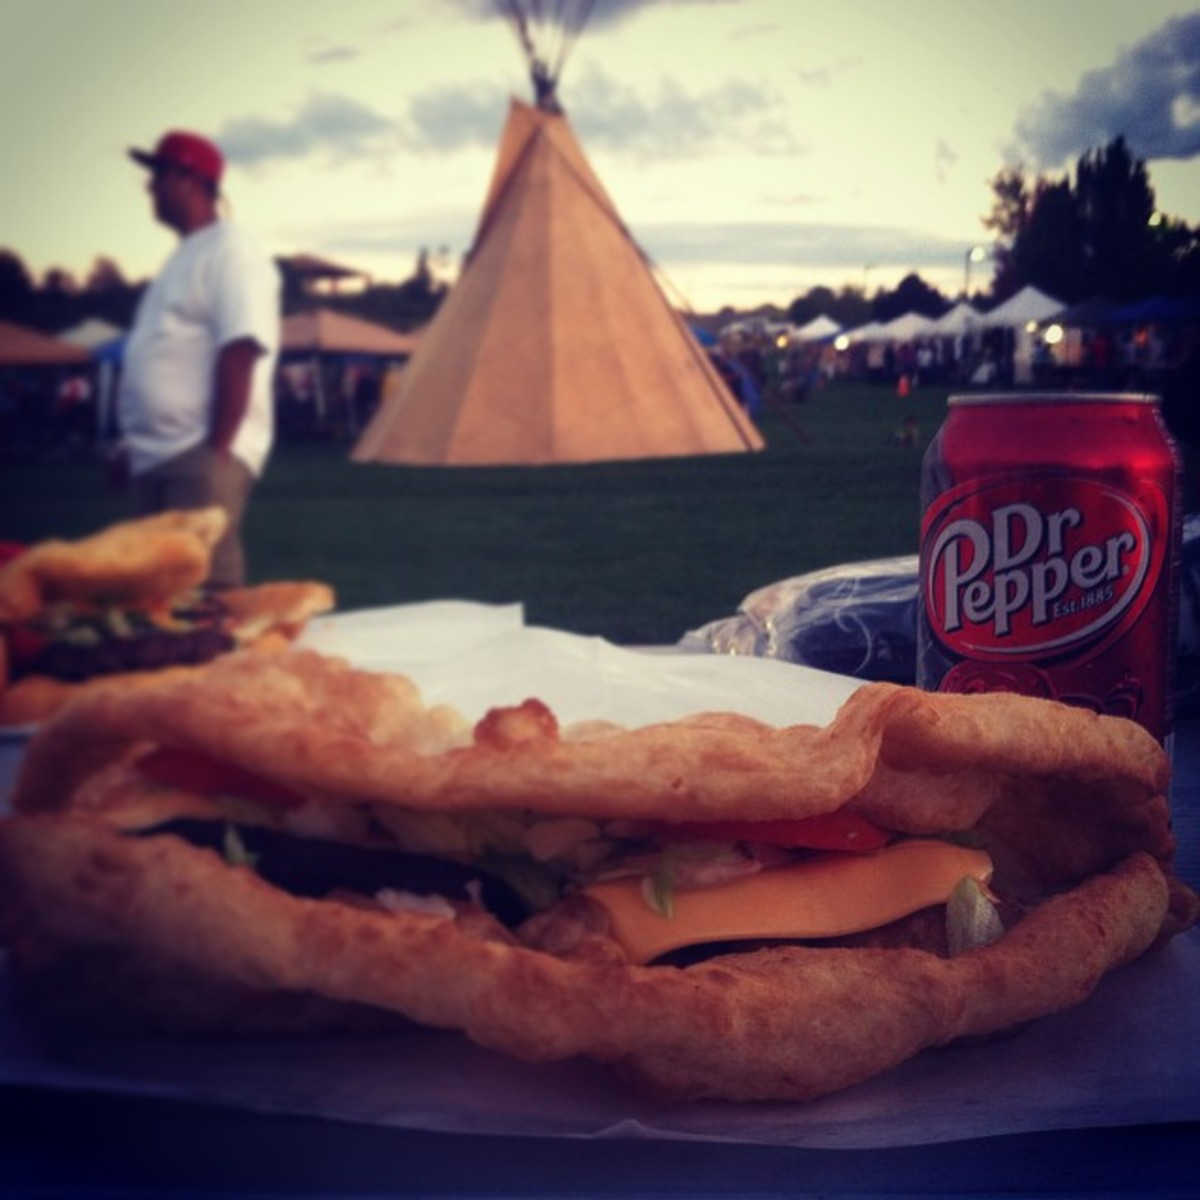 Tipi, frybread, and a can of Dr. Pepper